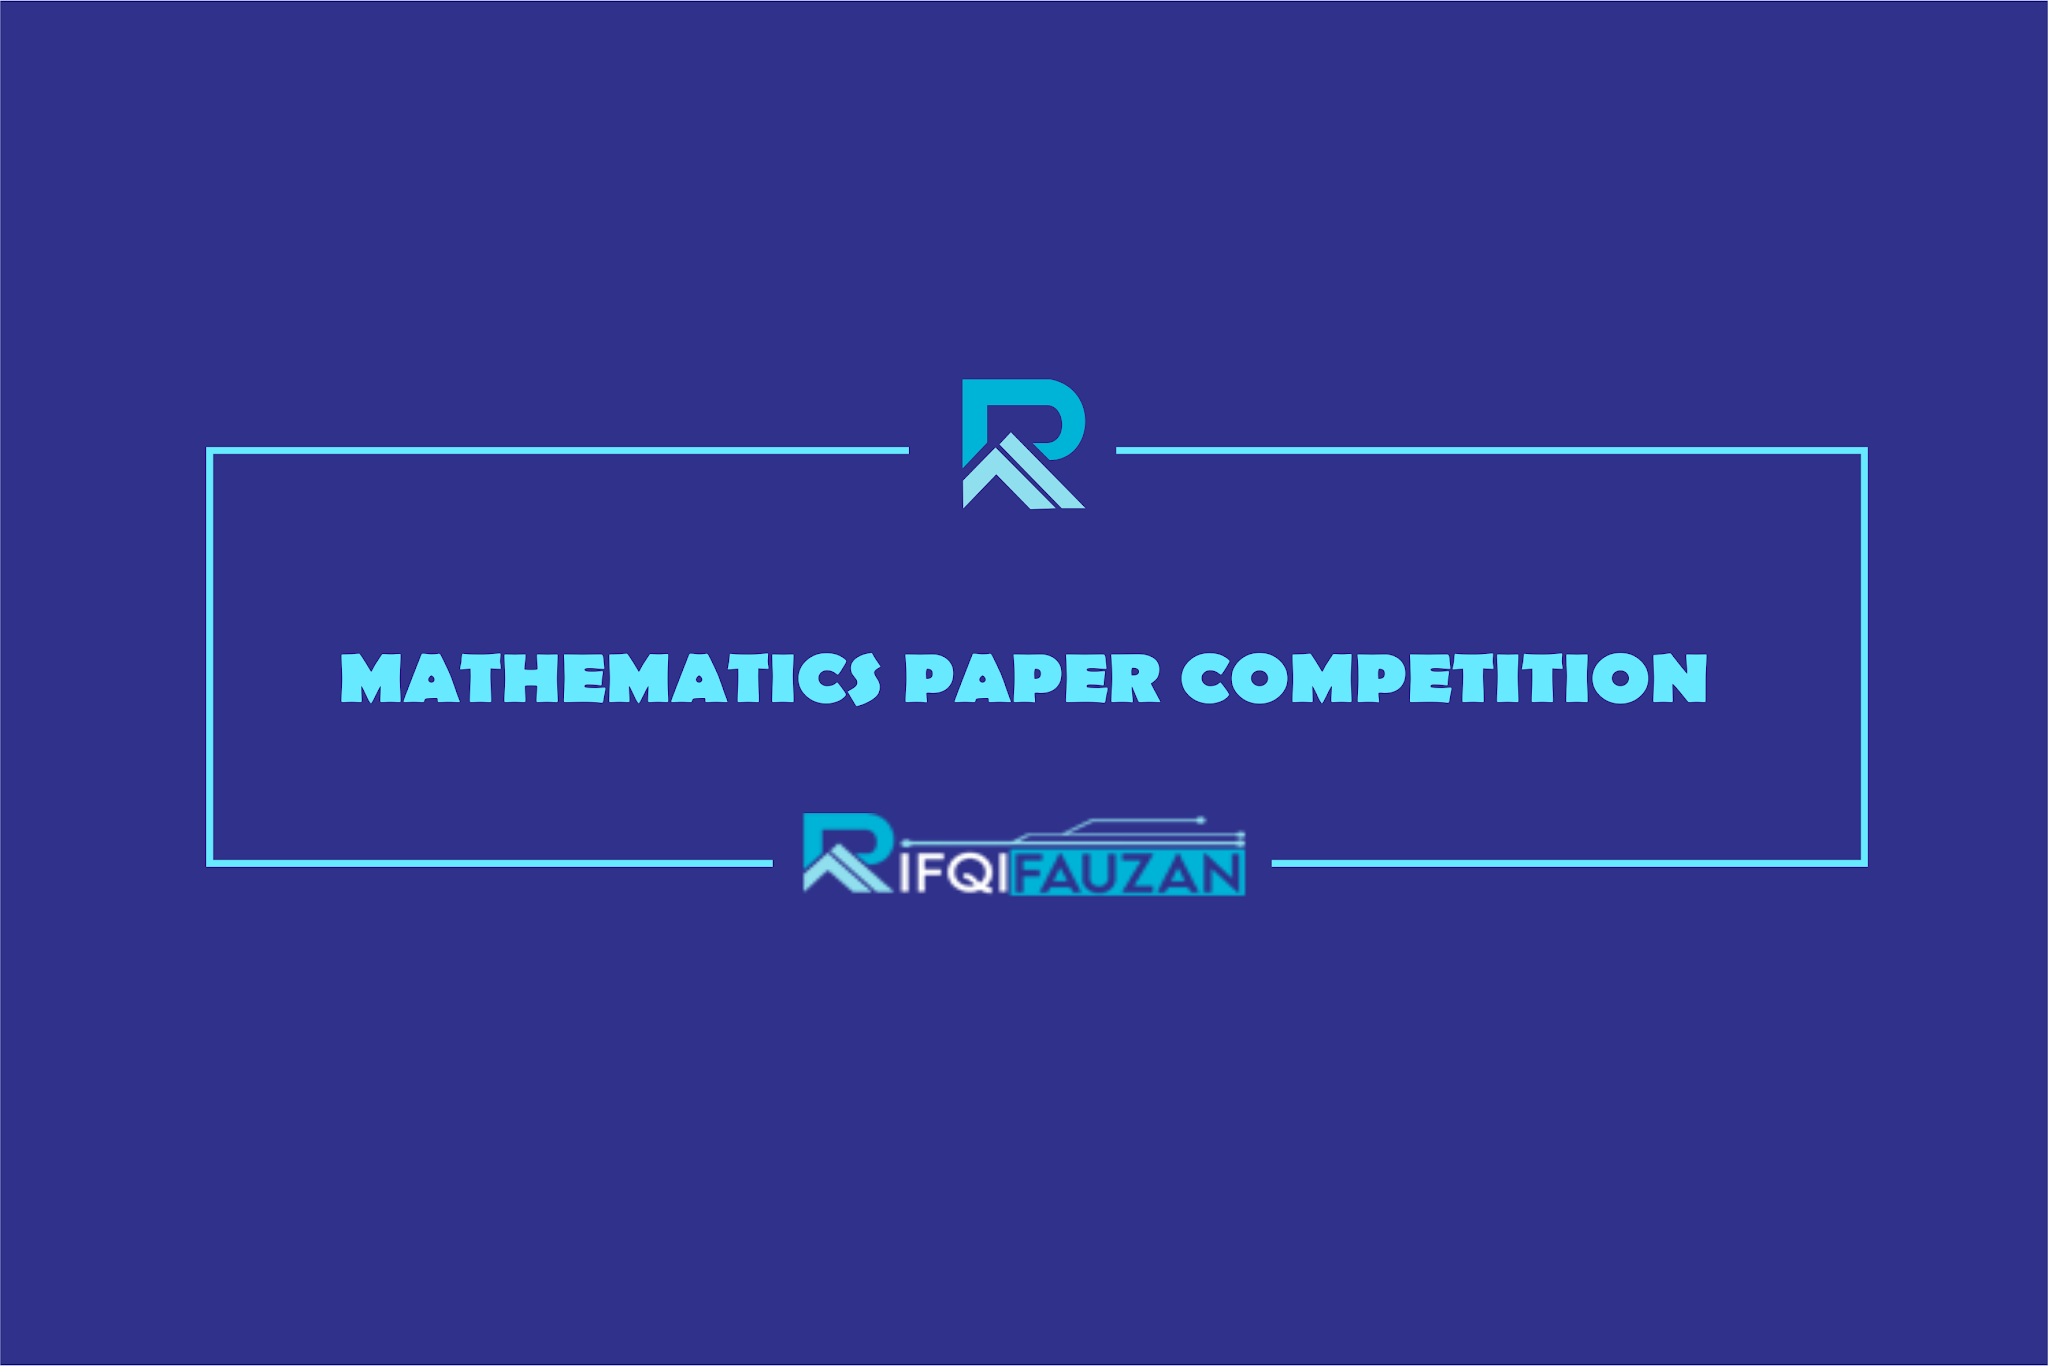 MATHEMATICS PAPER COMPETITION 2020